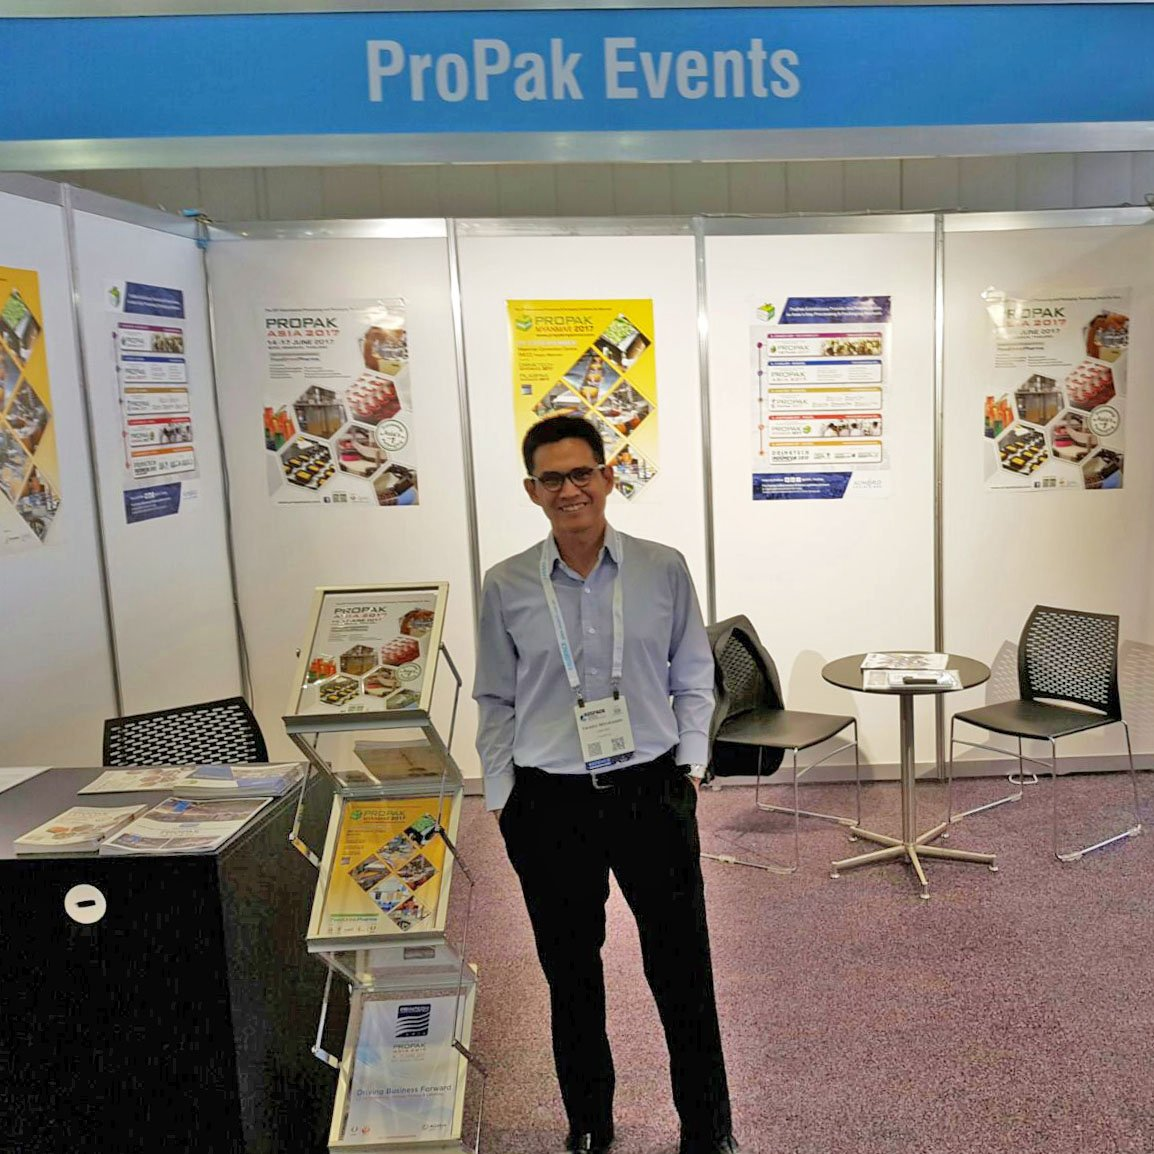 test Twitter Media - Visit booth 673 at #AUSPACK for opportunities in China and Southeast Asia  #processing #packaging #trade #show https://t.co/O6k84qMEma